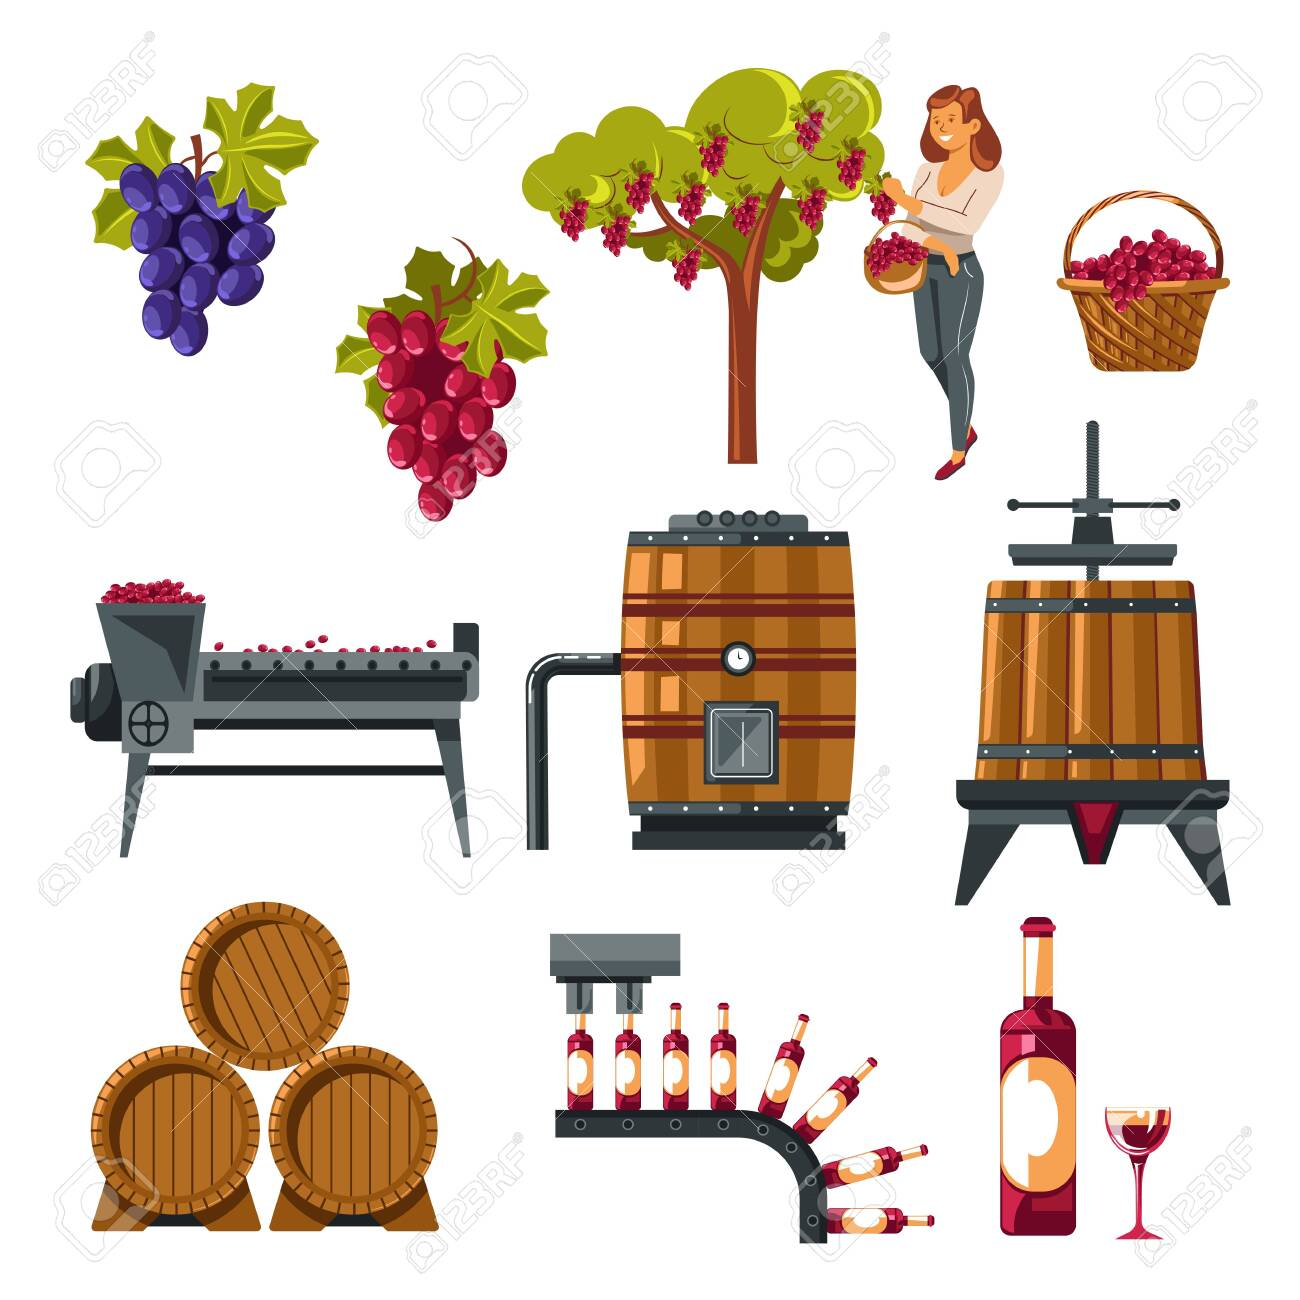 Winemaking process illustrated from grapes growing till wine bottling - 133435677